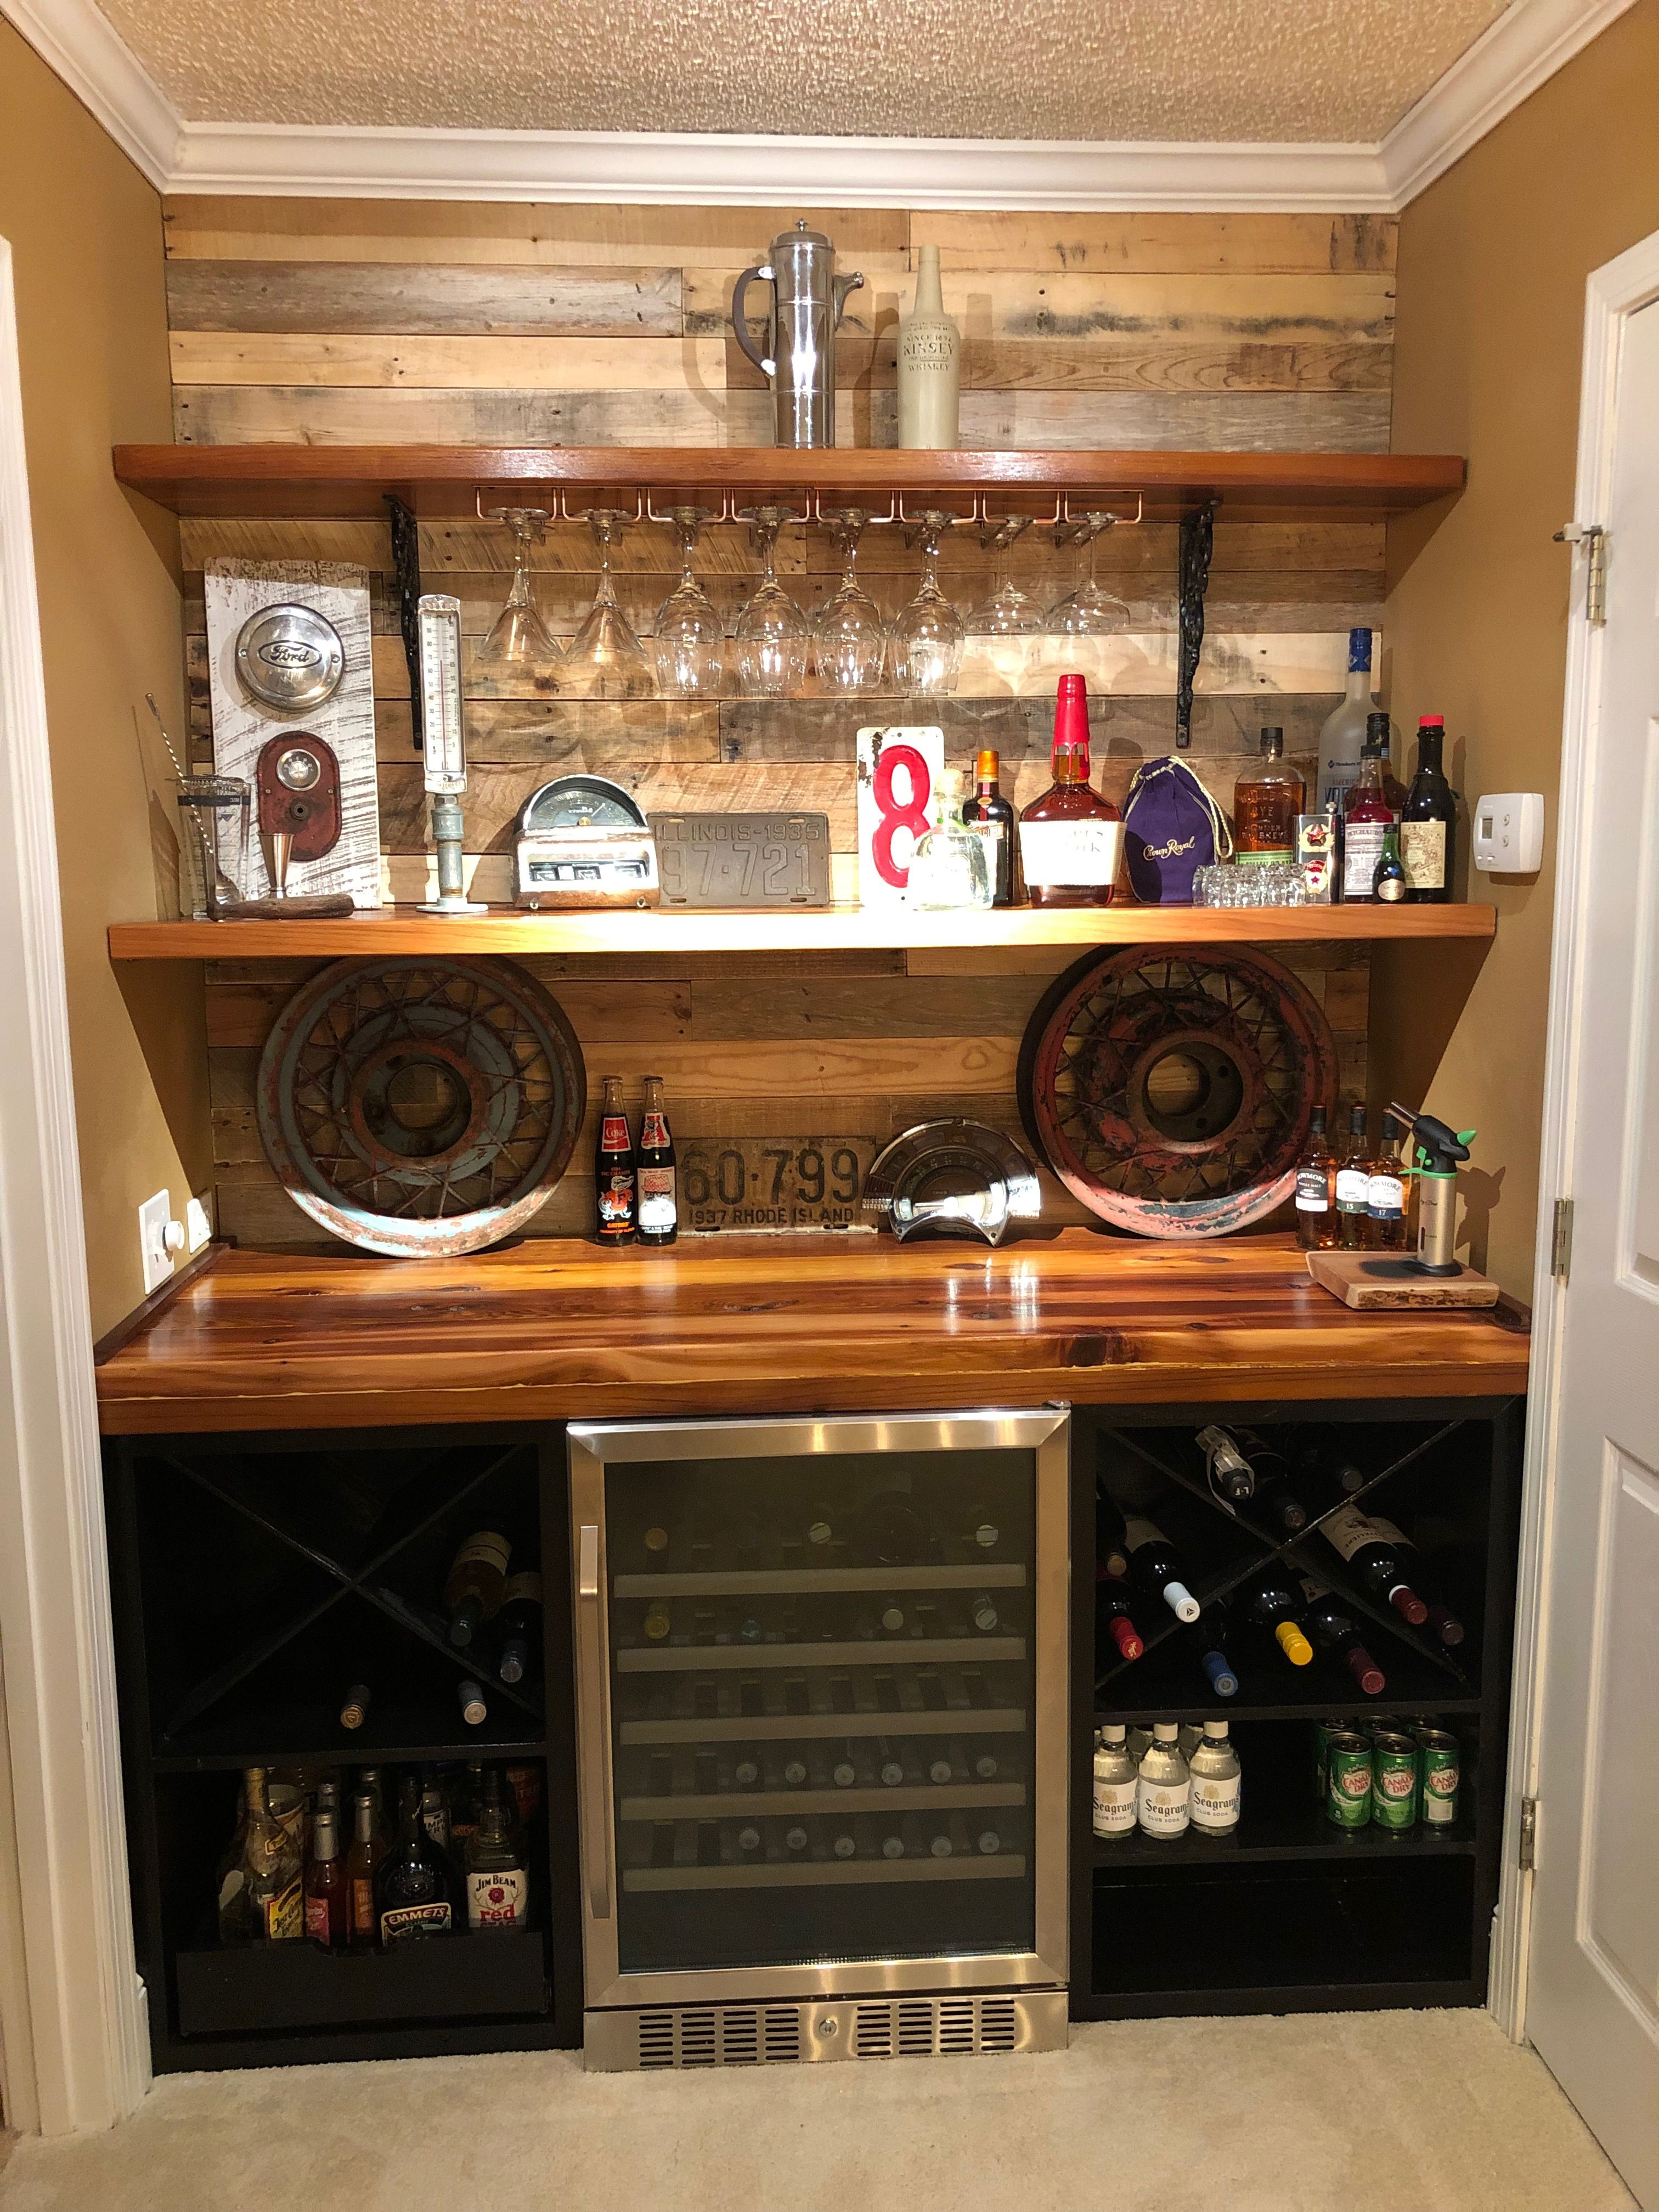 Home Bar Diy Vintage Car Themed Cedar Bar Top And Shelves With 1935 Kelsey Hayes Spoke Rims Supporting Floating Diy Home Bar Bar Shelves Small Bars For Home